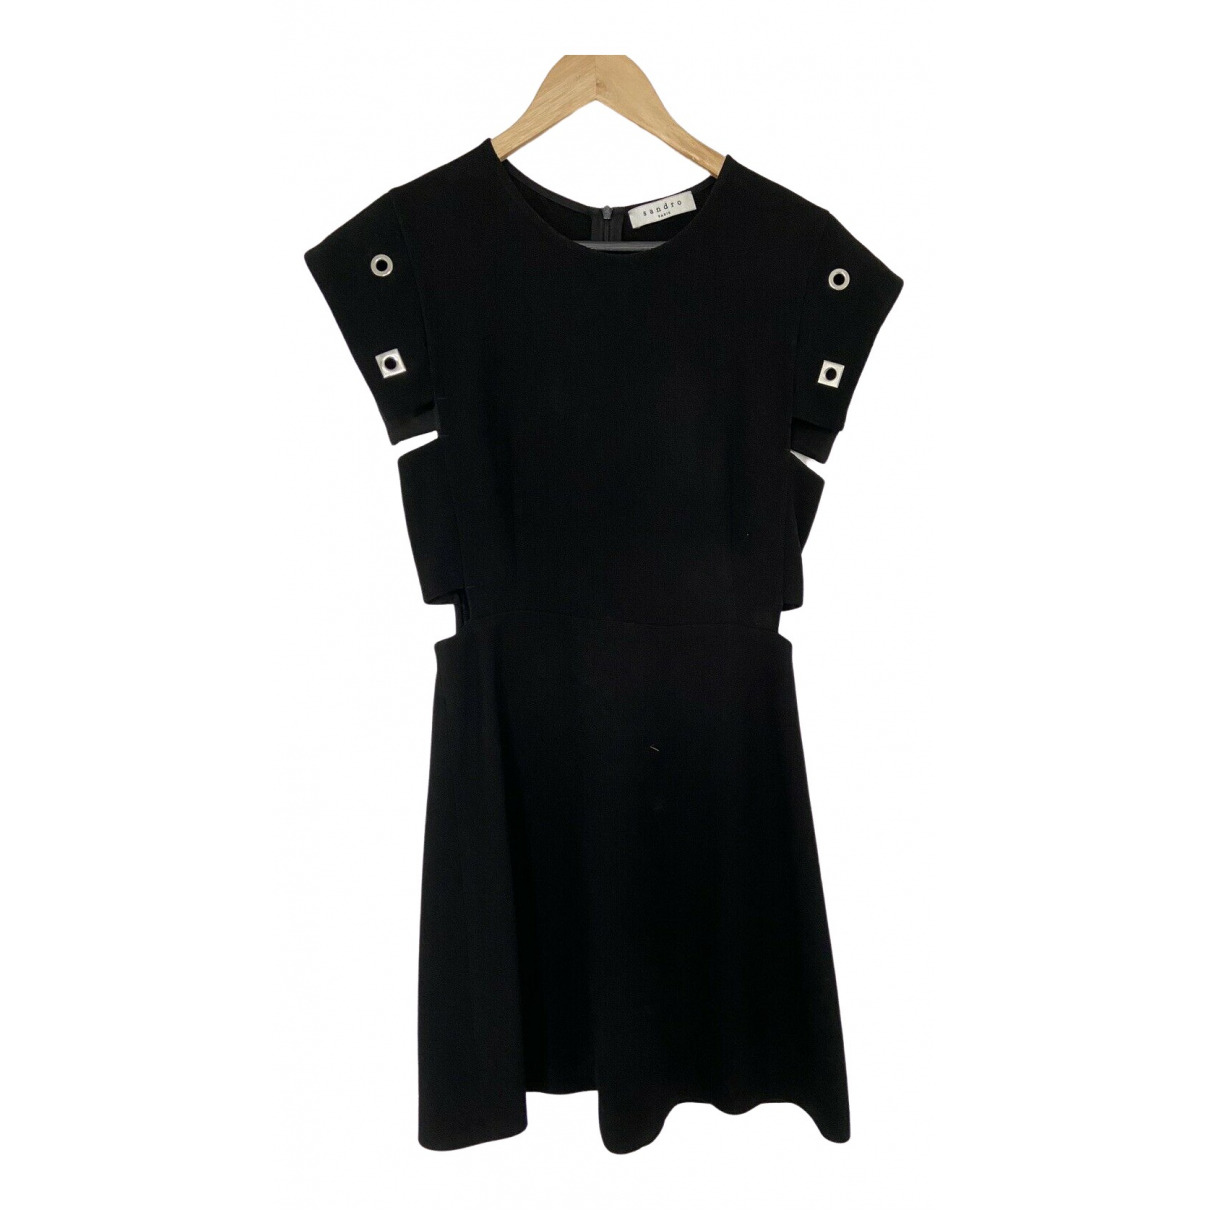 Sandro Spring Summer 2019 Black dress for Women 3 0-5